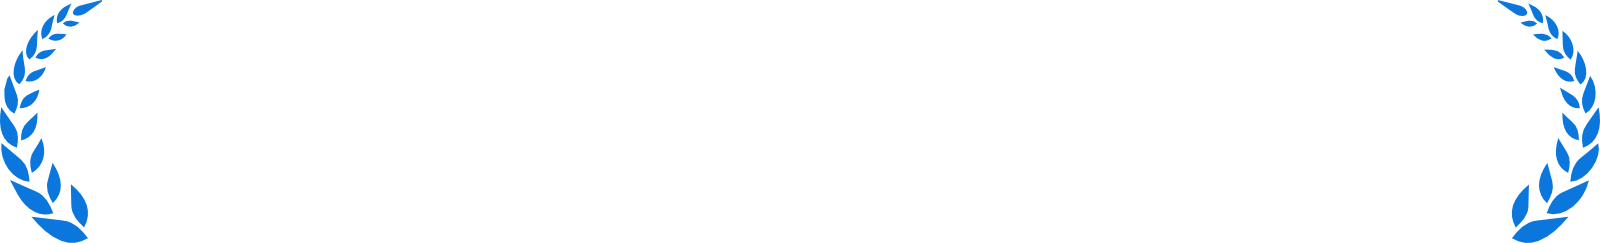 Best Drum Educational Website - DRUM! Magazine